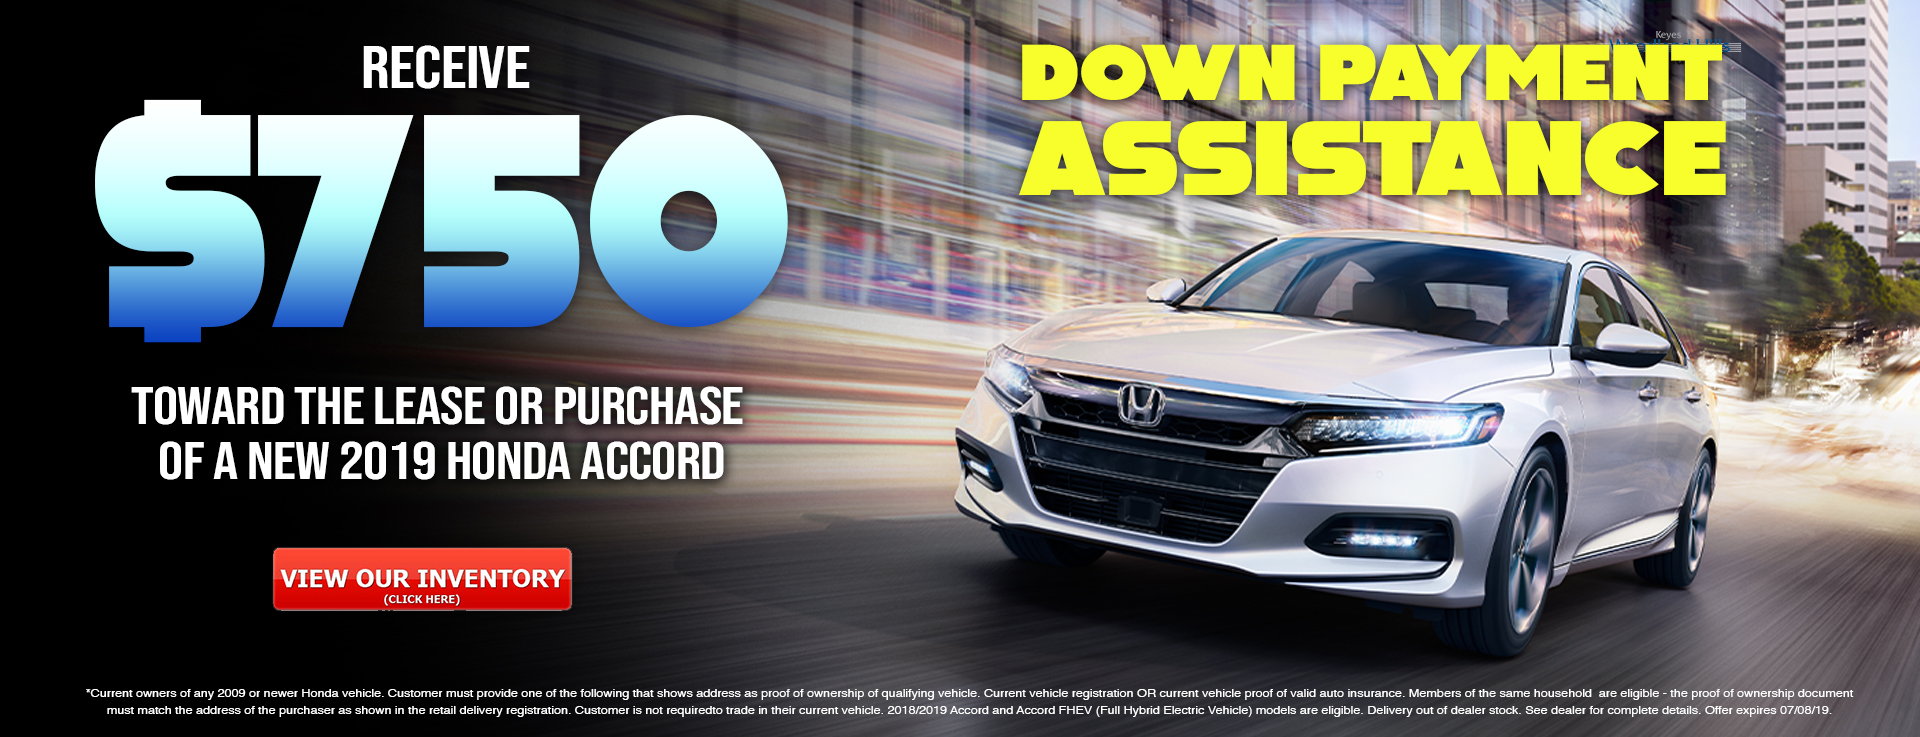 Honda Accord Down Payment Assistance